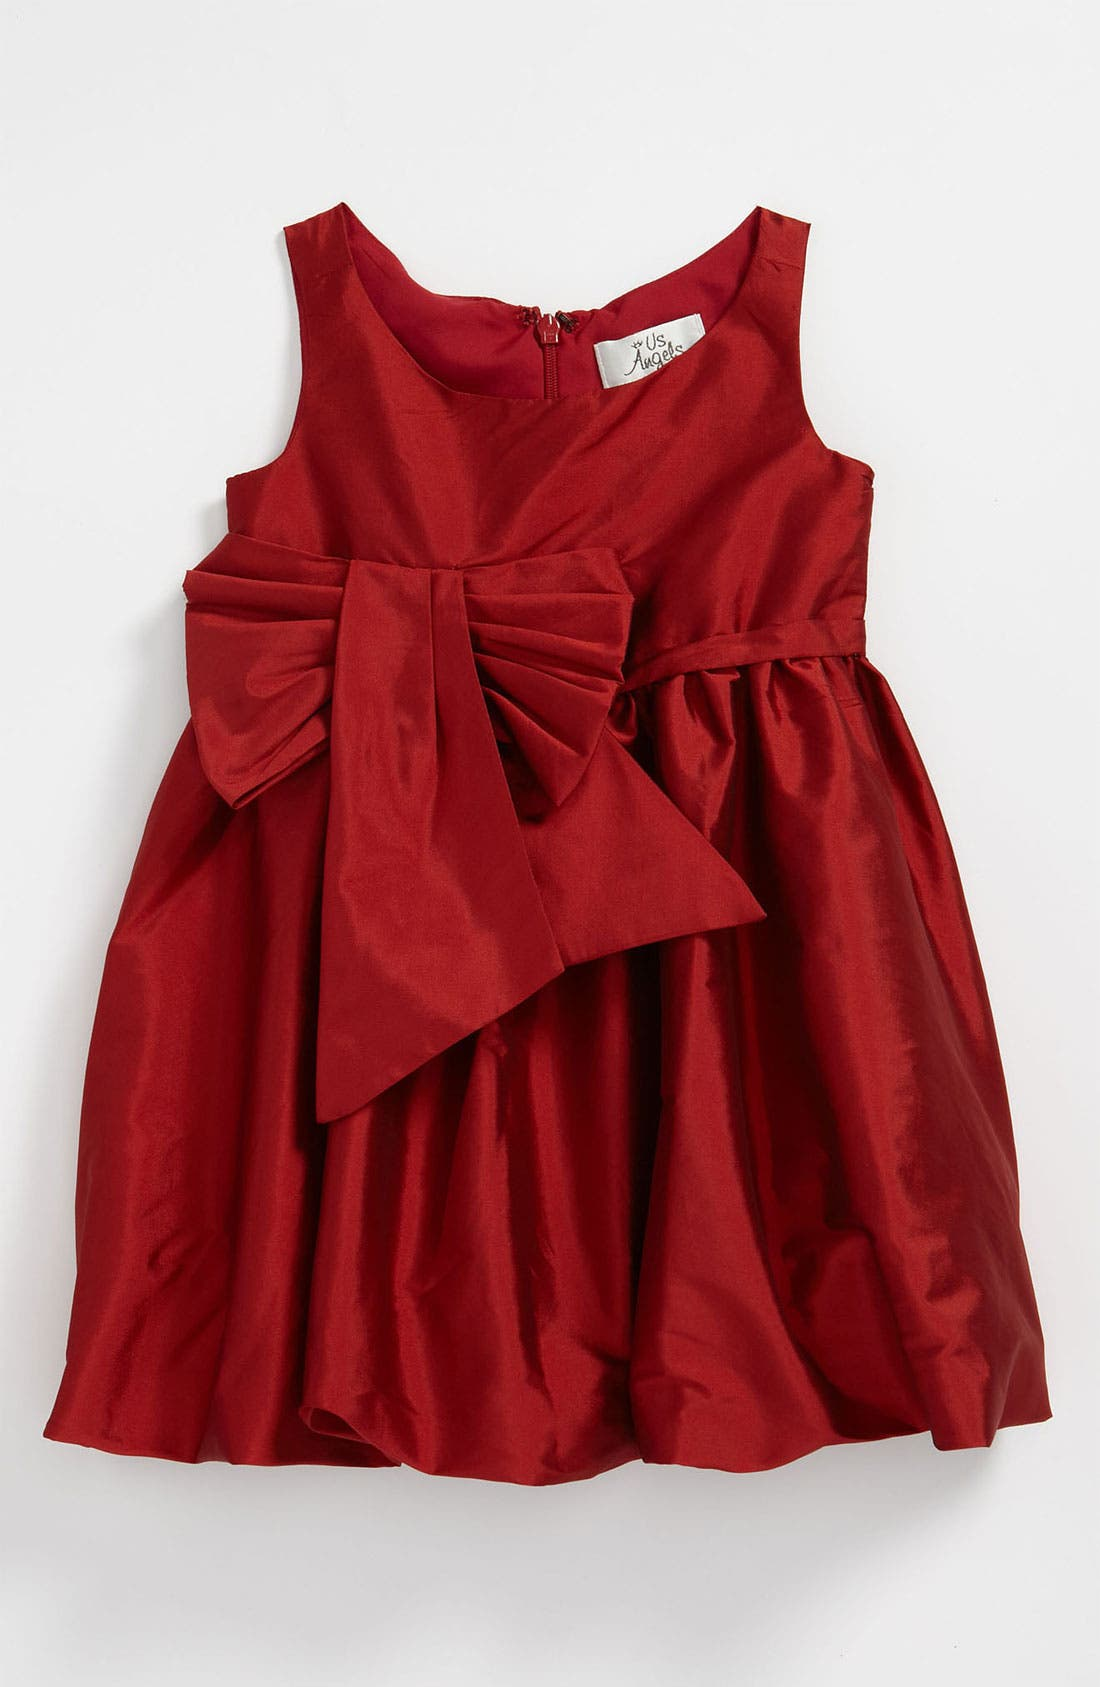 Main Image - Us Angels 'Bow' Bubble Dress (Toddler)